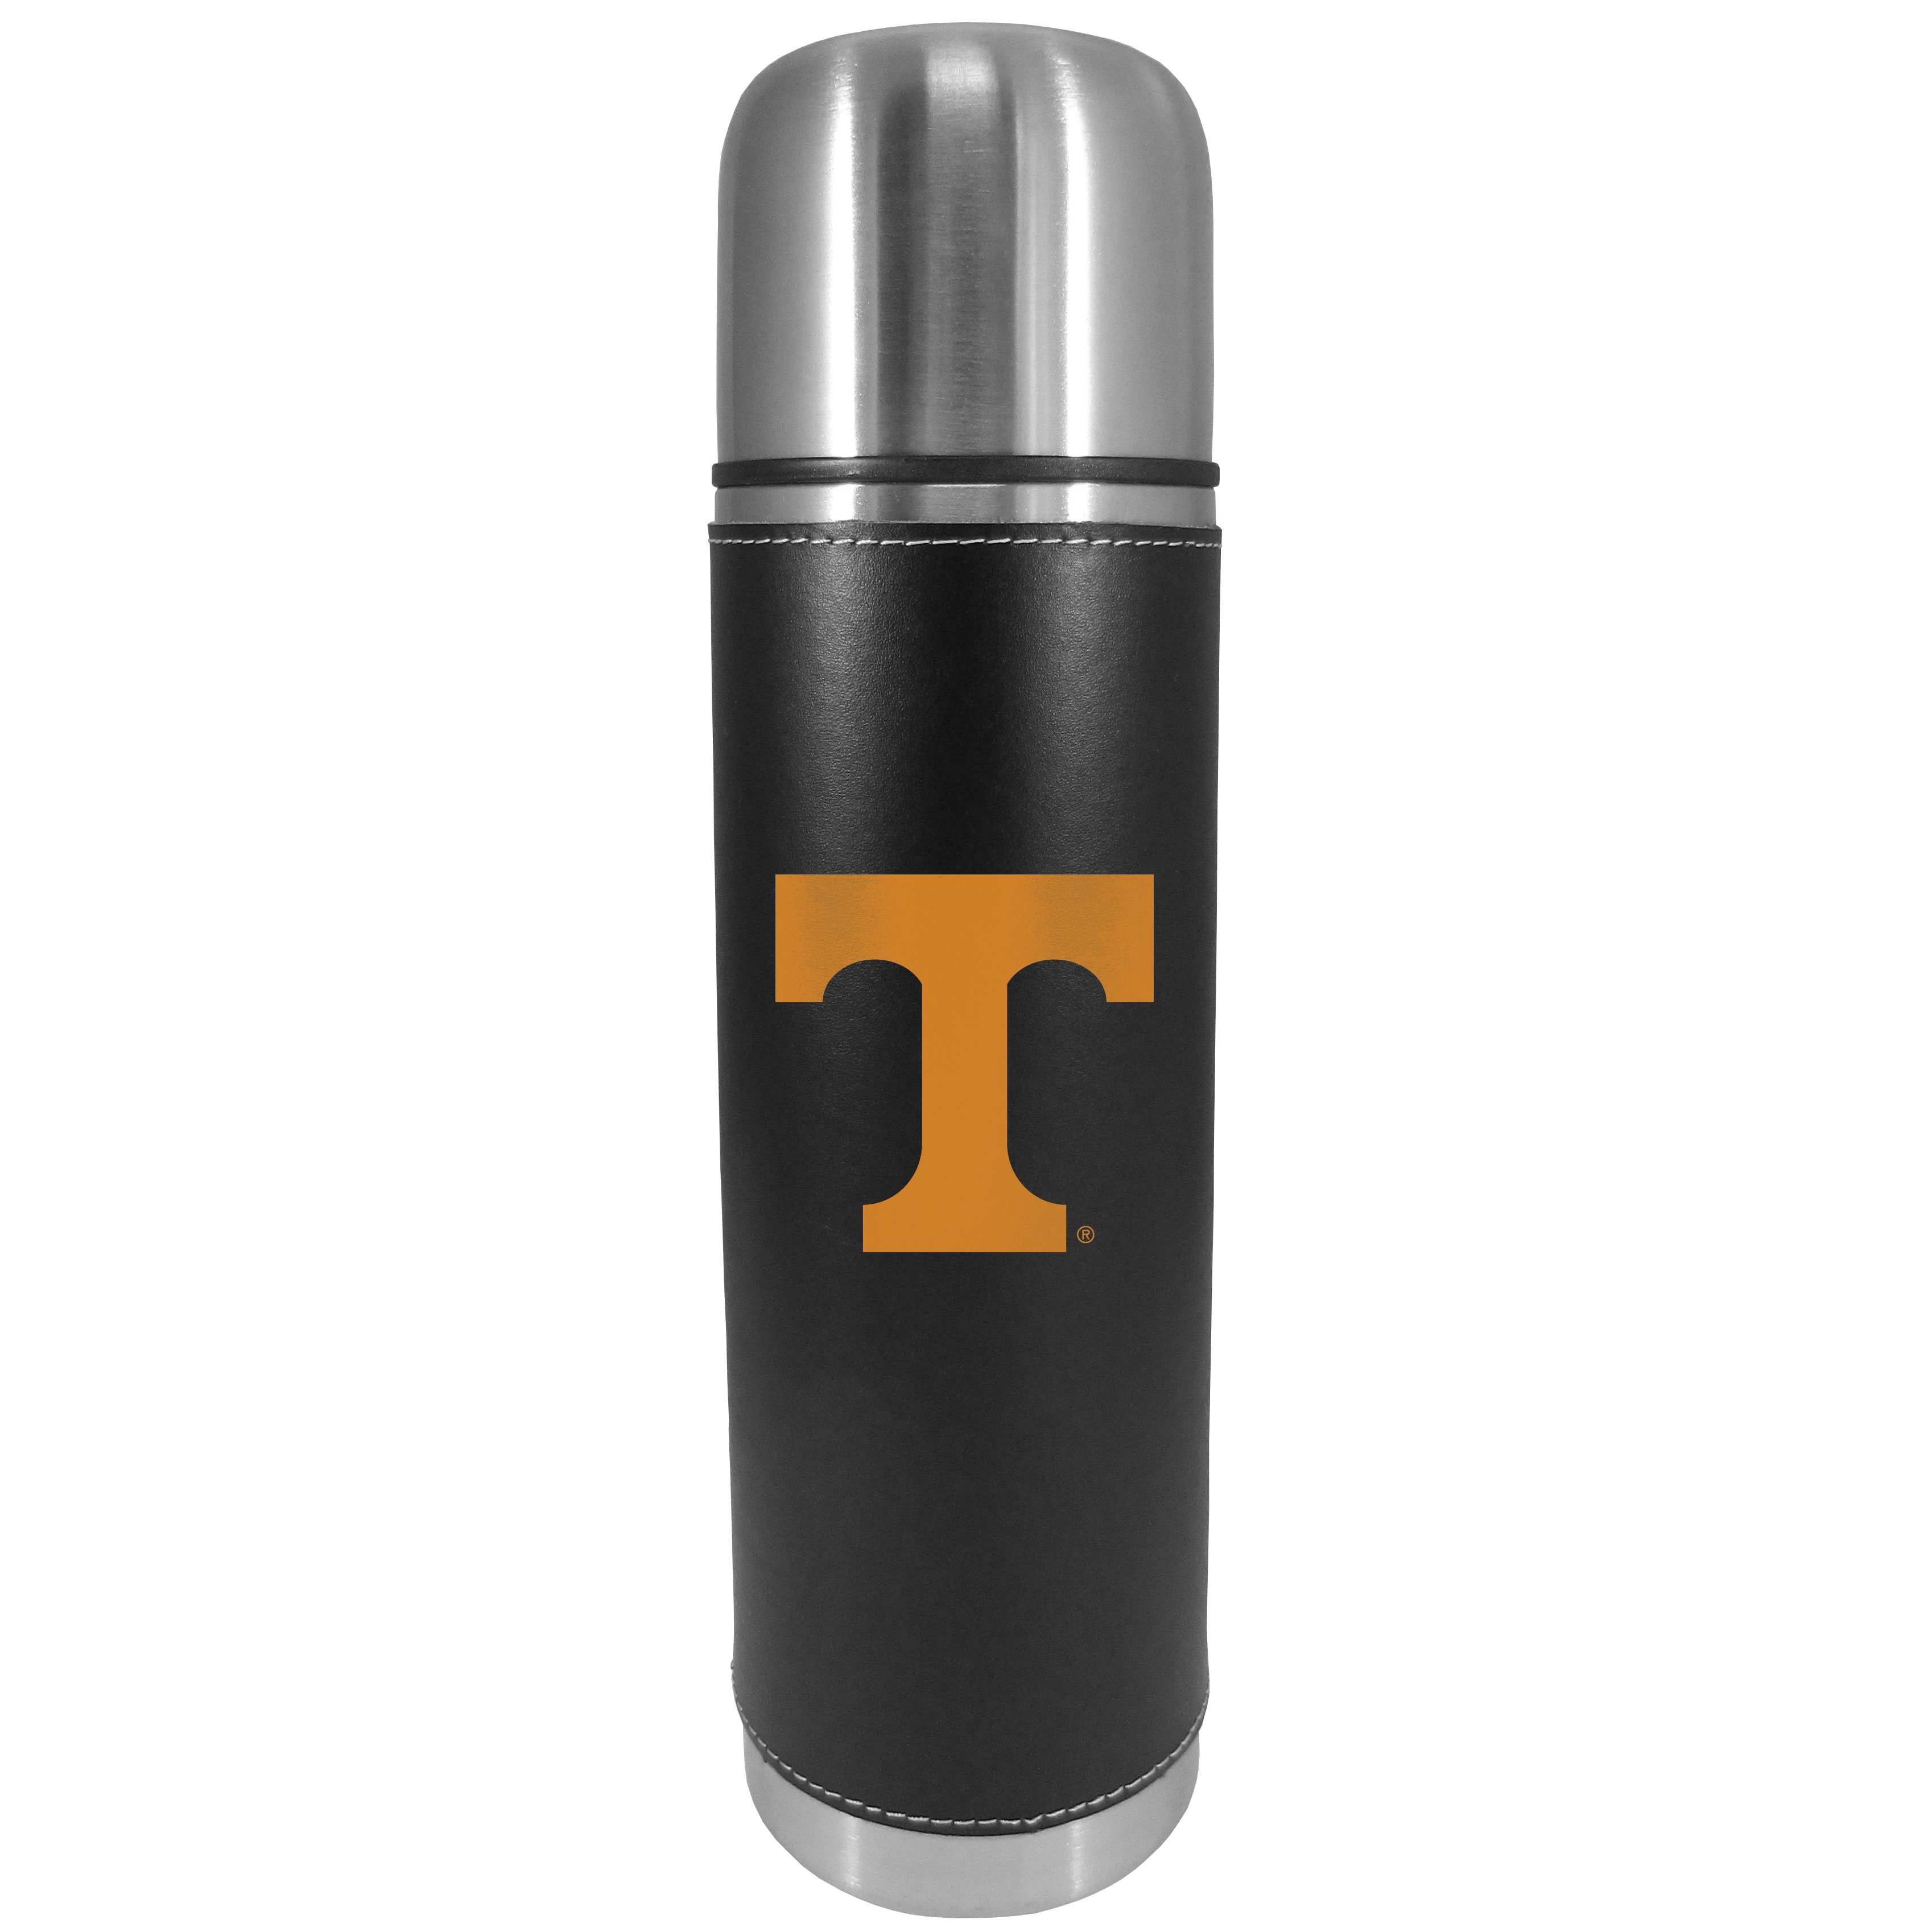 Tennessee Volunteers Graphics Thermos - This attractive, 26 ounce Tennessee Volunteers thermos is a great way to keep your beverages hot while on the go. The 11 inch tall, vacuum sealed thermos features a black vinyl wrap with stitched details and a digitally printed team logo. The lid screws on and can be used as a cup.